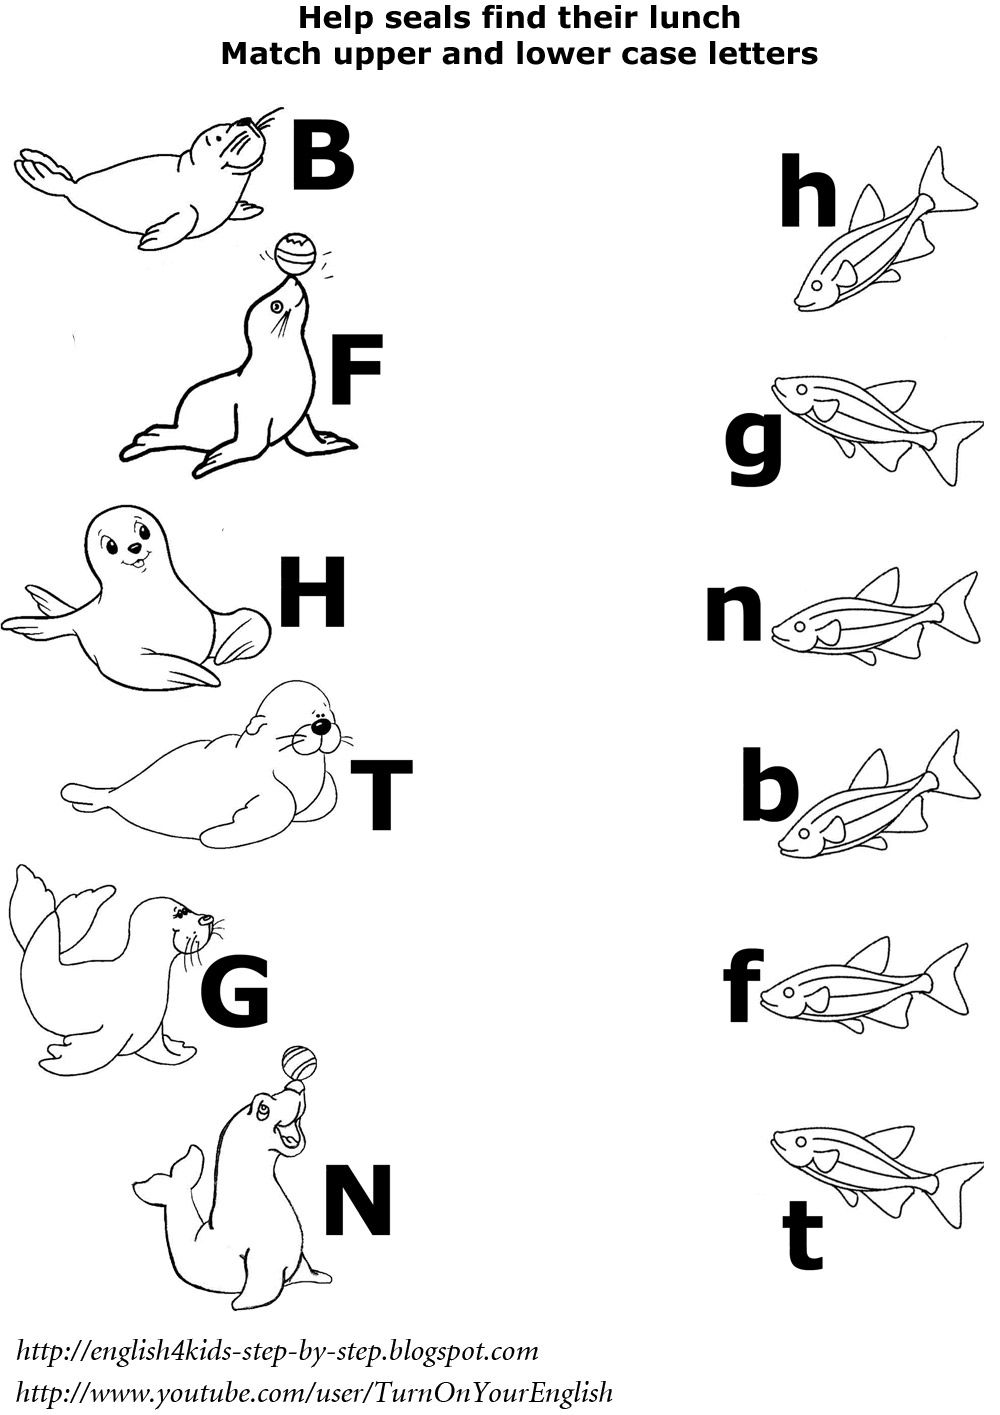 arctic animals matching upper and lower case letters worksheet esl